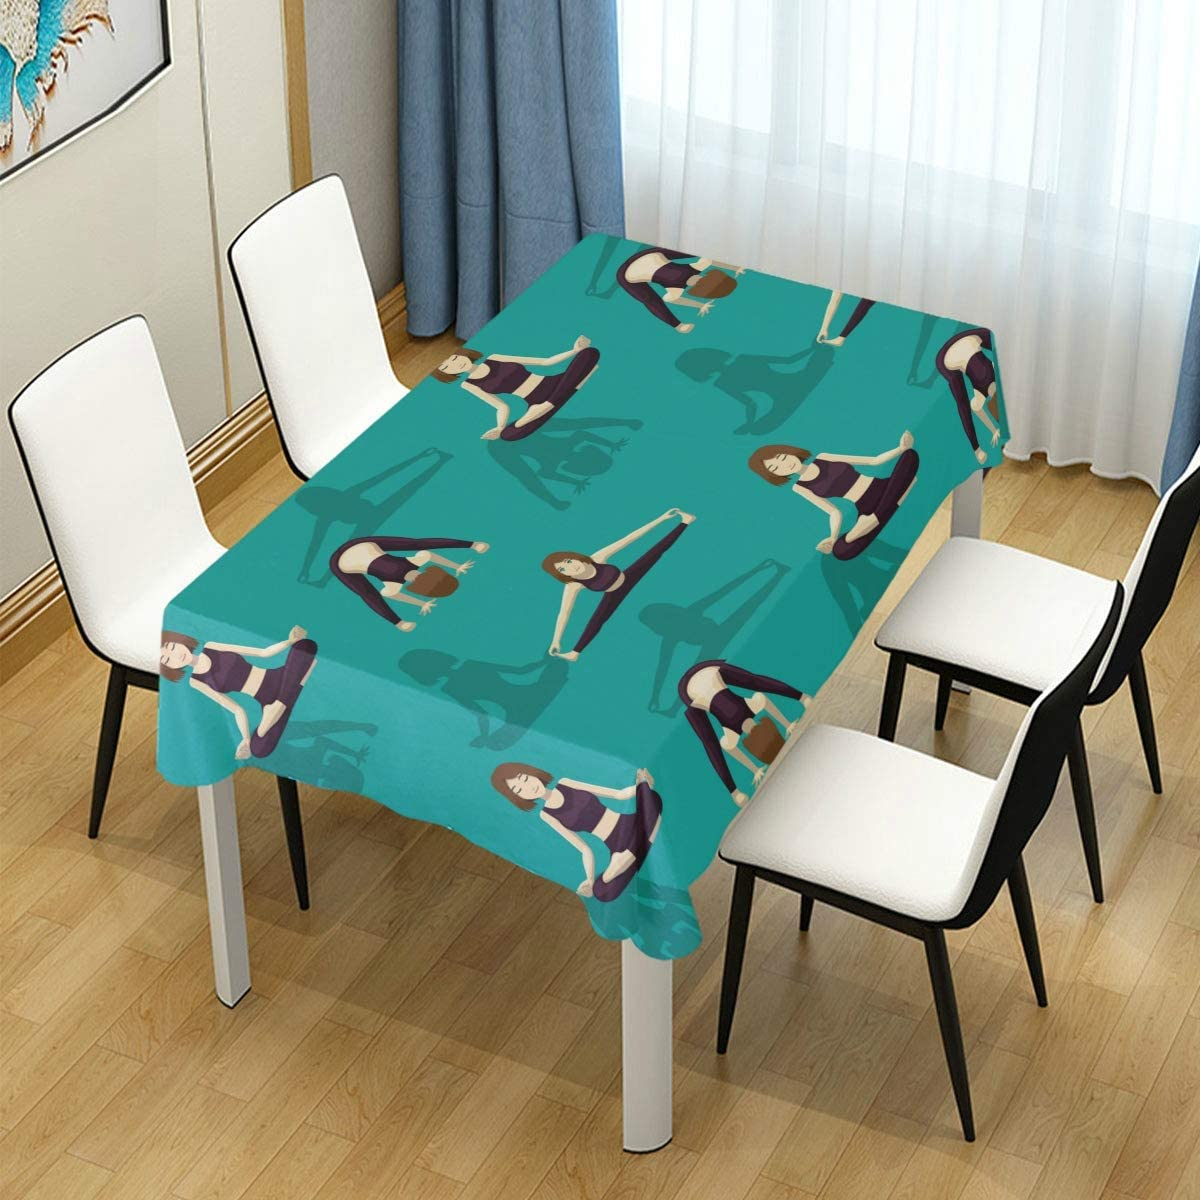 PENGTU Decor Tablecloth Manga Yoga Woman Fire Log Pose Multicolor Rectangular Table Cover for Dining Room Kitchen Outdoor Picnic